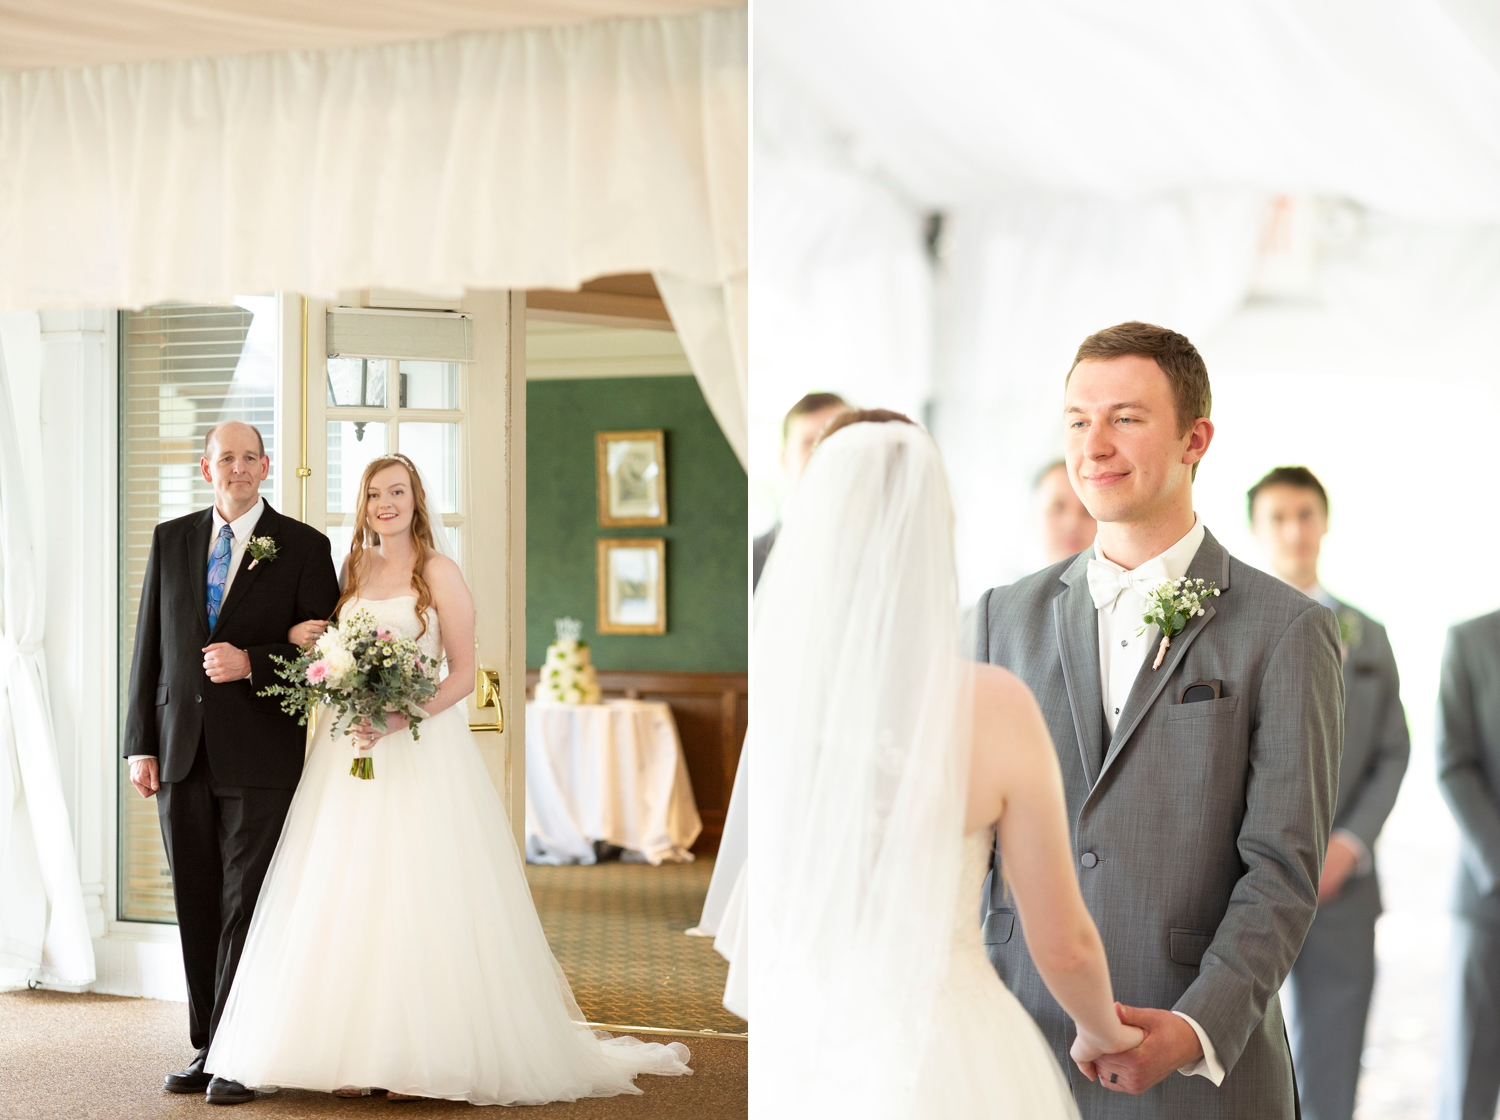 The lakes golf and country club, Westerville ohio, Westerville wedding, dublin wedding, columbus wedding photography, vow renewal, tent wedding, country club wedding, golf course wedding, christian wedding, wedding ceremony, bride walking down aisle